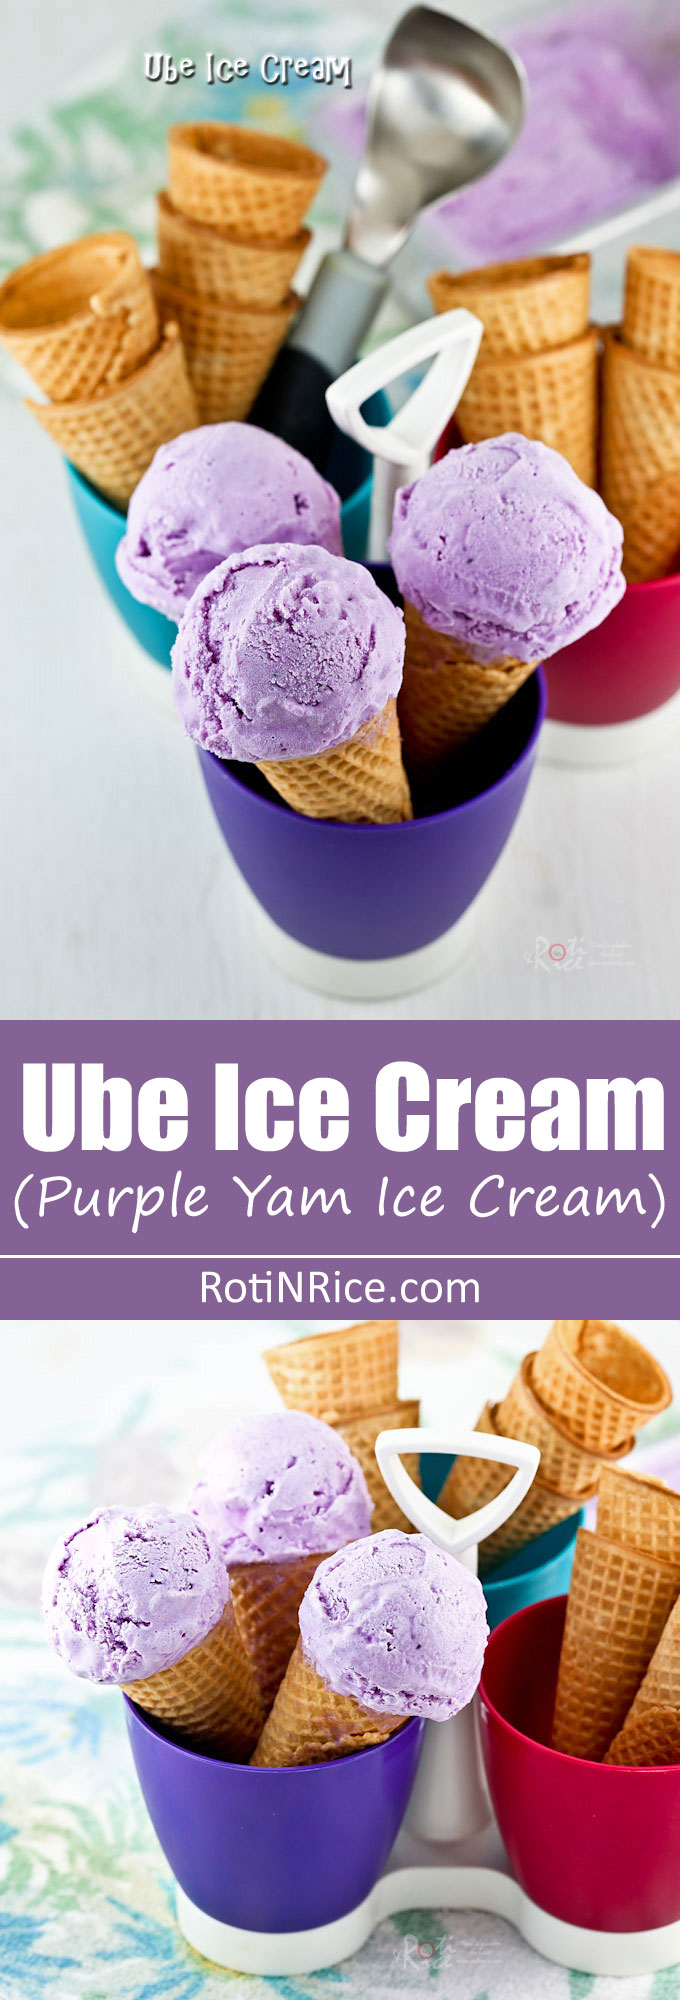 This delicious Ube Ice Cream is smooth and creamy with an almost floral hint. Make it at home using frozen grated purple yam. You will totally love it! | RotiNRice.com